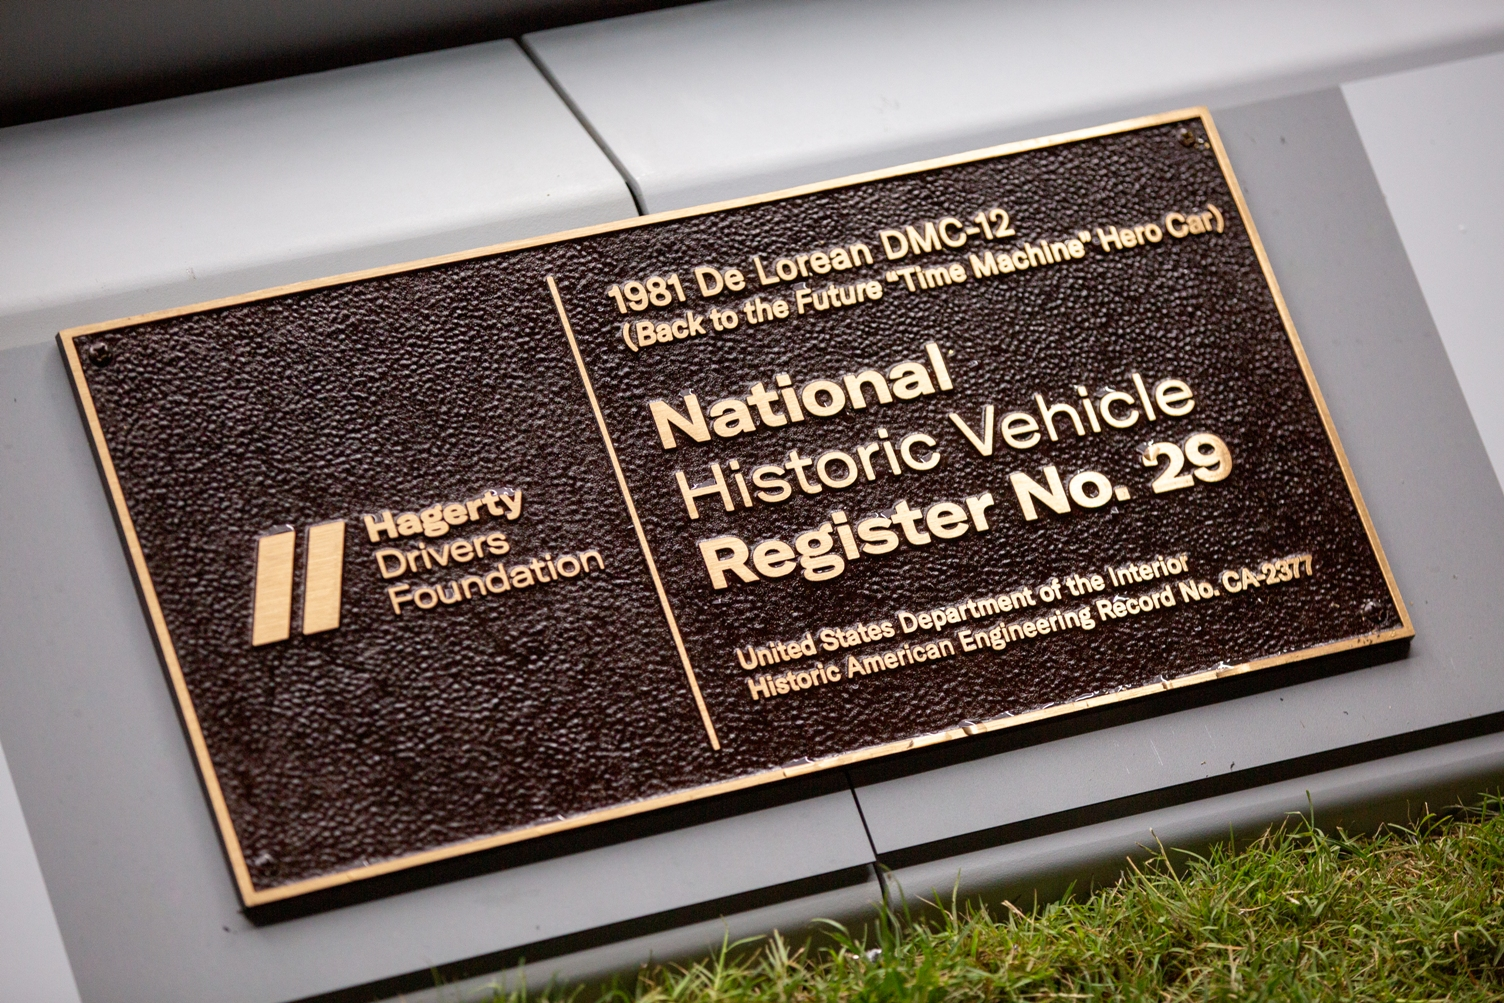 Hagerty Drivers Foundation plaque